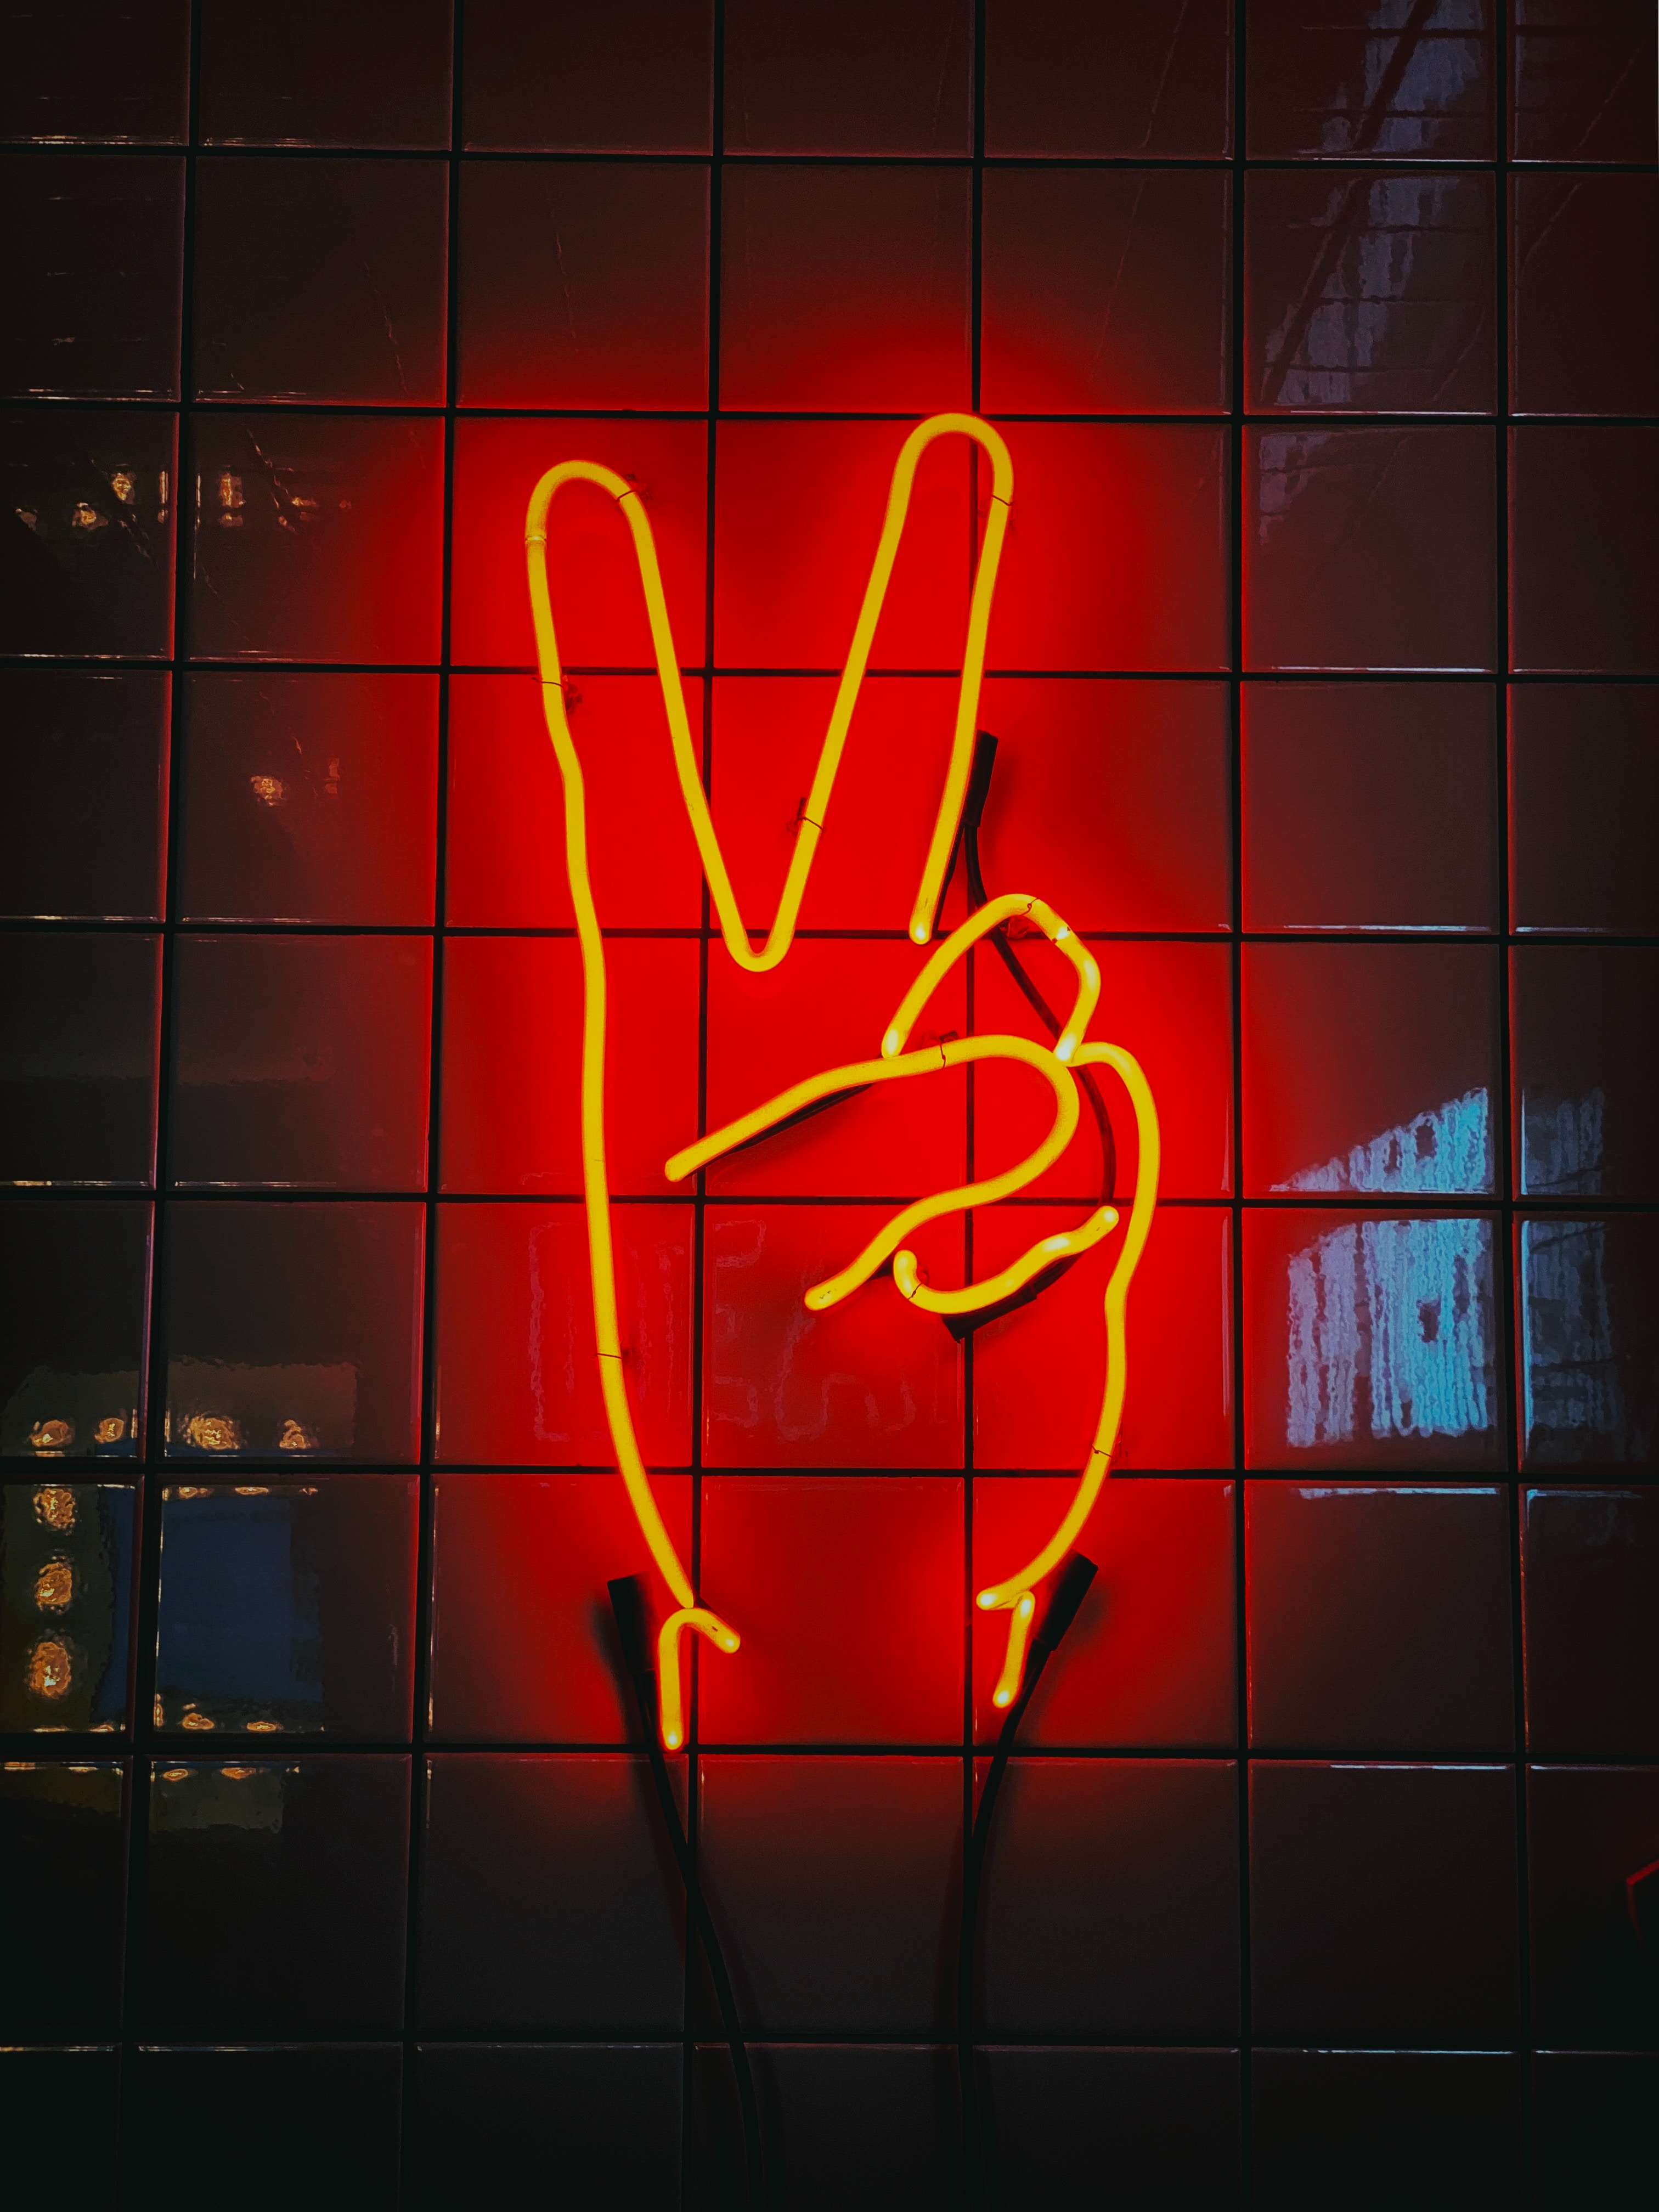 118611 download wallpaper Miscellanea, Miscellaneous, Hand, Gesture, Peace, World, Neon, Signboard, Sign, Glow screensavers and pictures for free